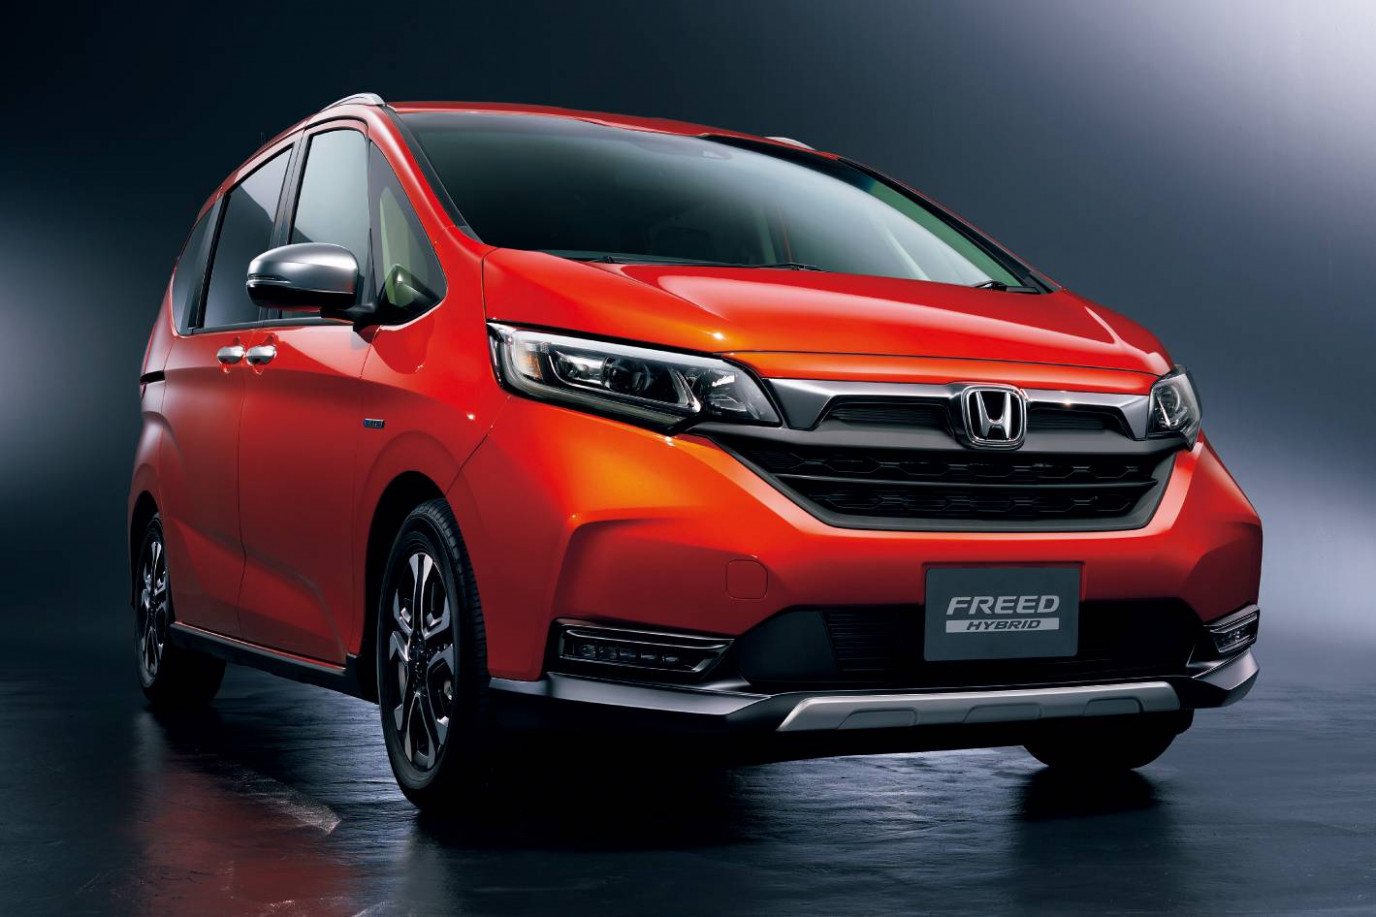 7 Honda Freed Gets Facelifted In Japan, Gains SUV-Style ...